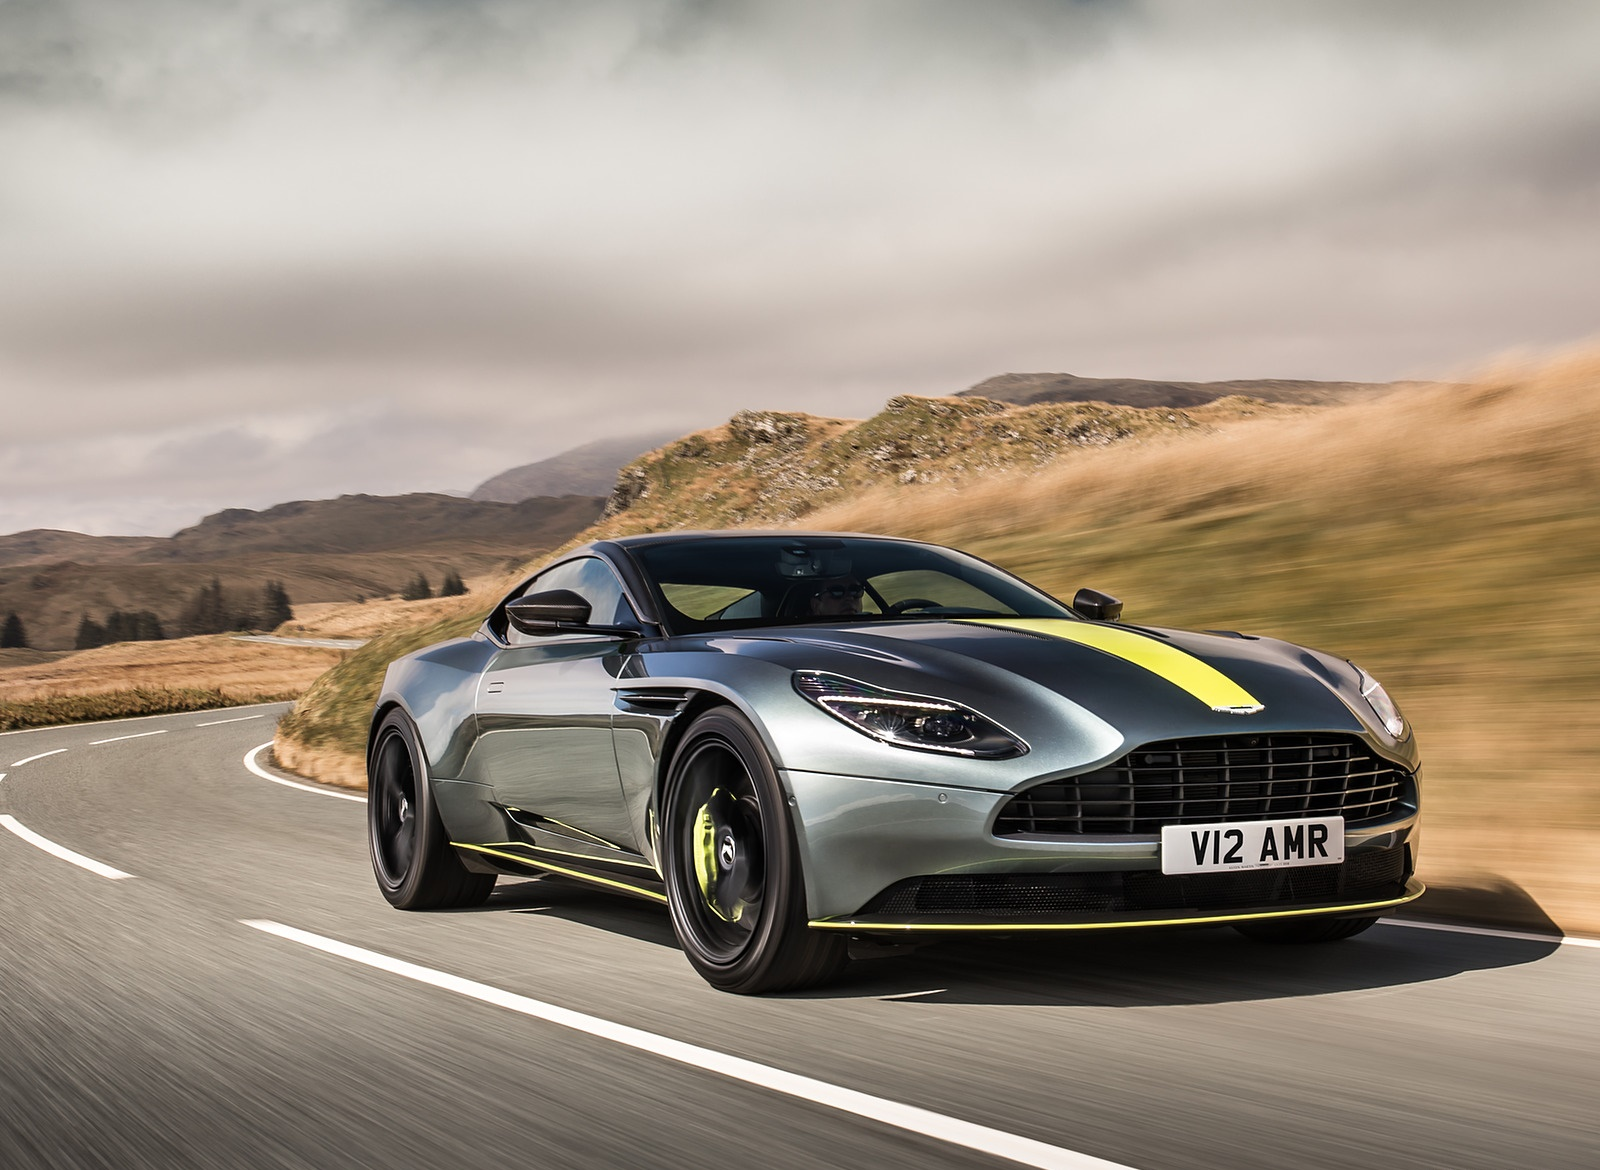 2019 Aston Martin DB11 AMR (Signature Edition) Front Three-Quarter Wallpapers (7)